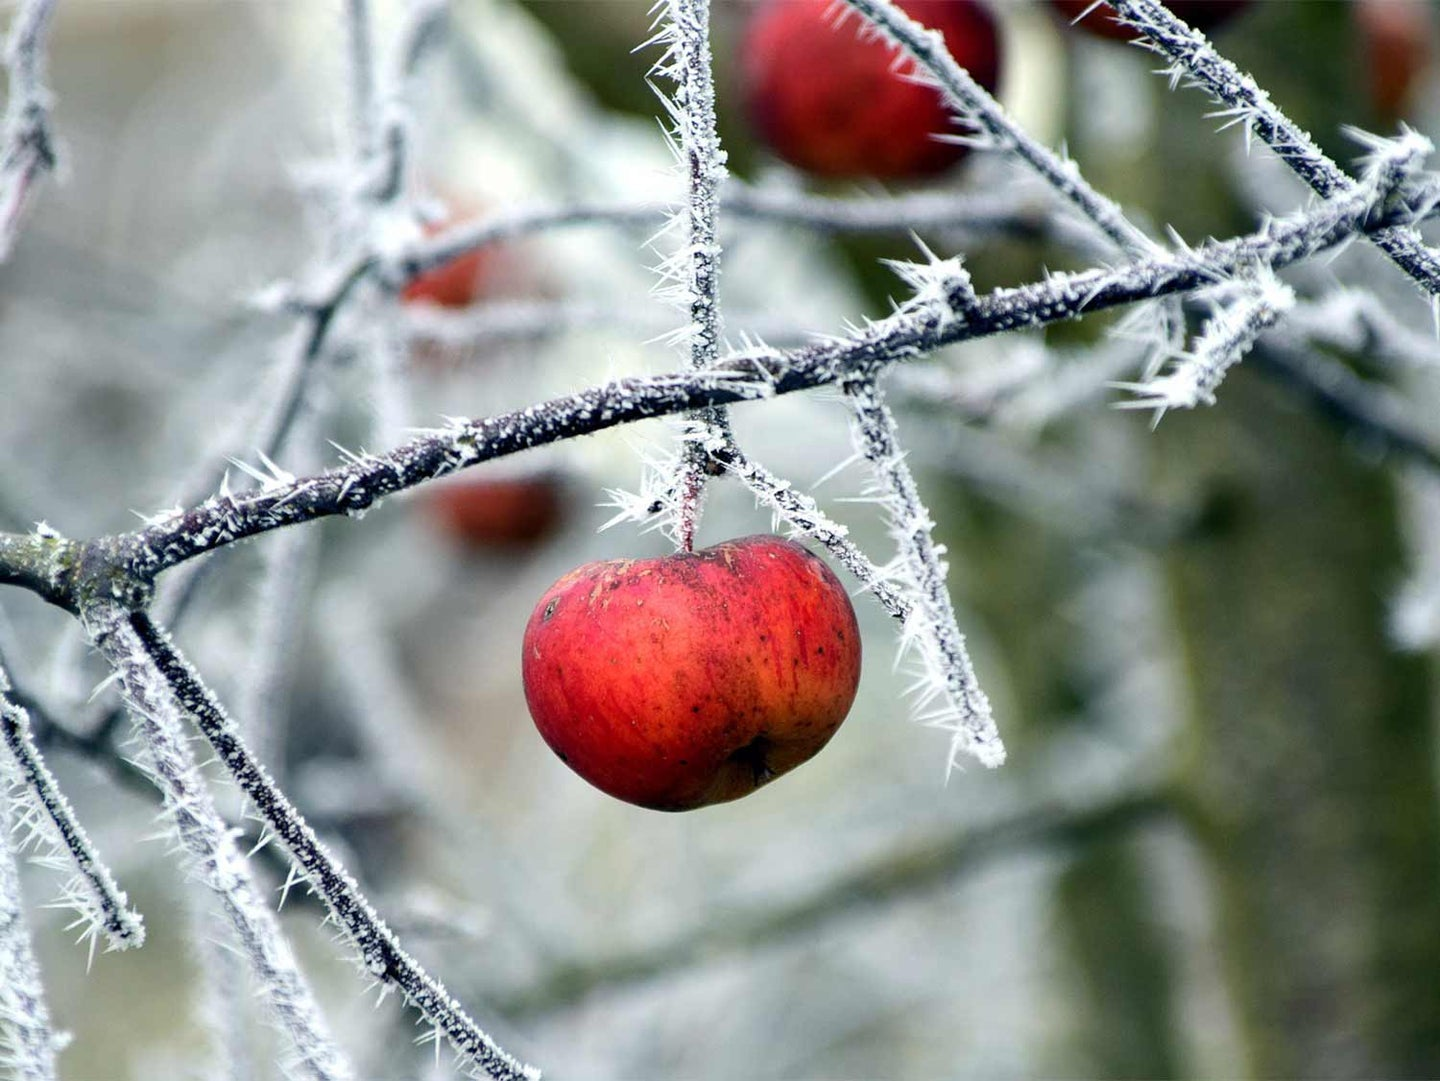 A batch of wild apples growing on a growing from branches of trees covered in ice and frost.